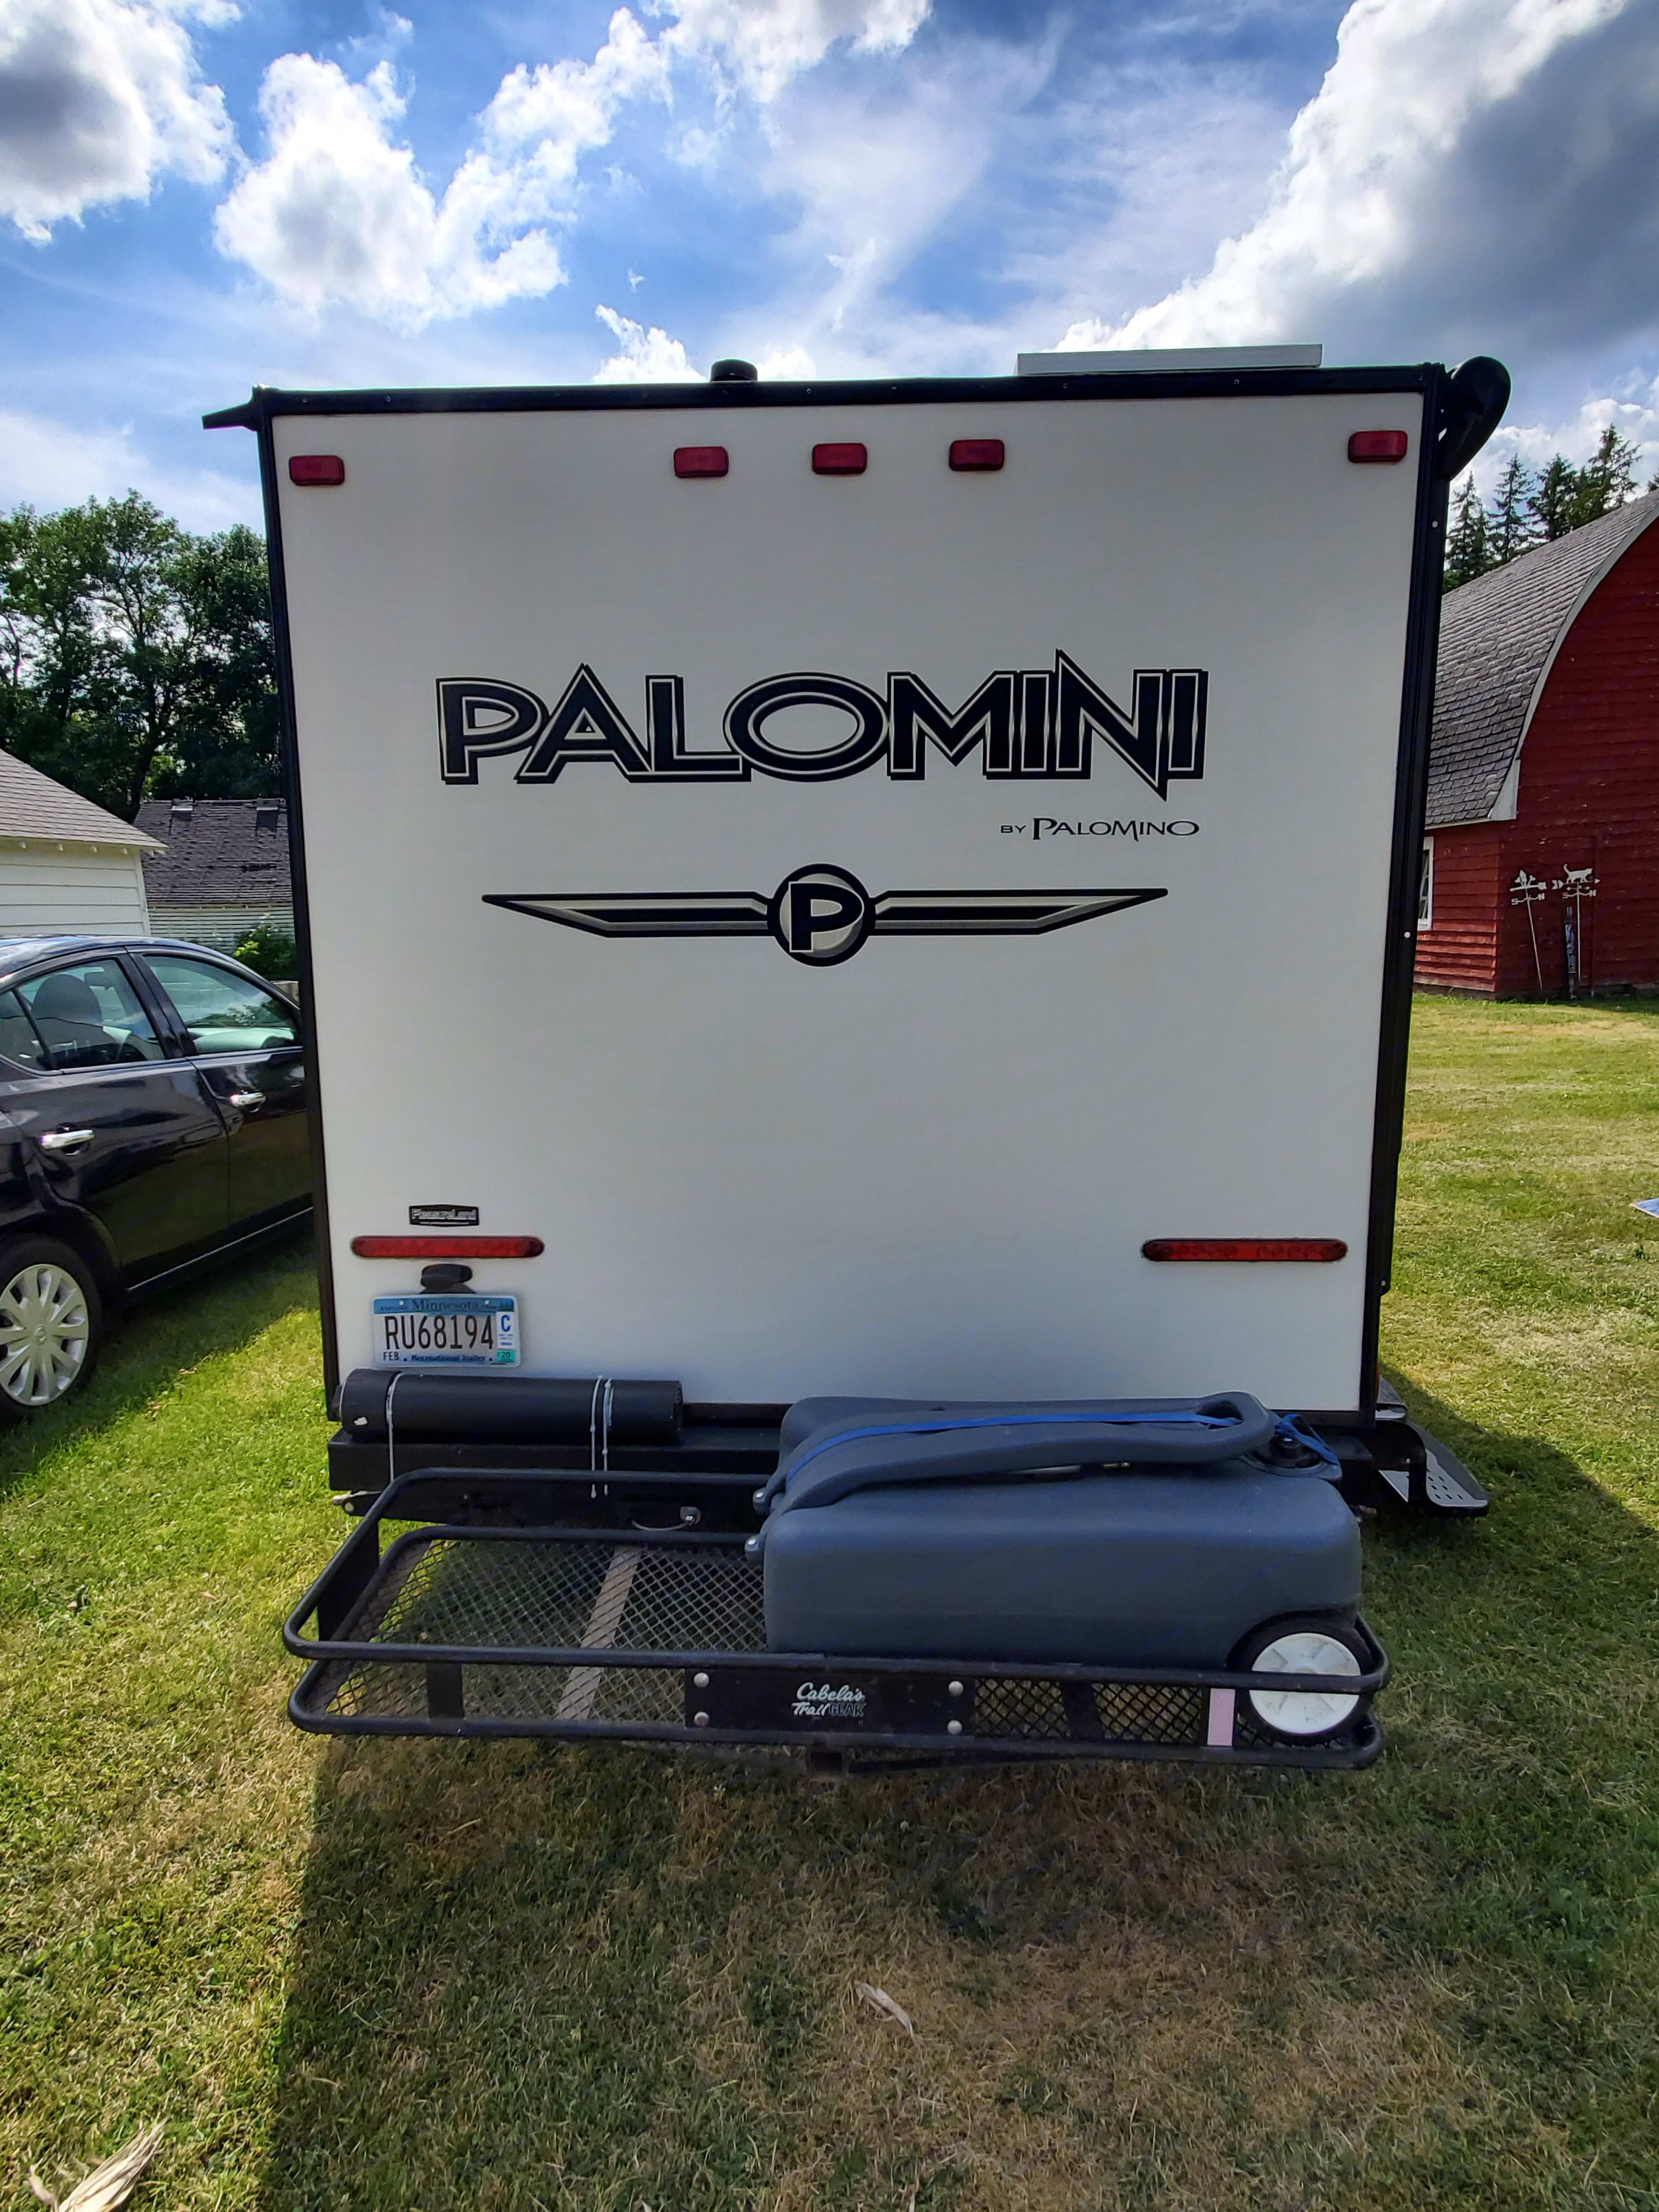 This portable waste tank makes life a little easier when you don't have sewer hook ups.. Palomini 150RBS 2014